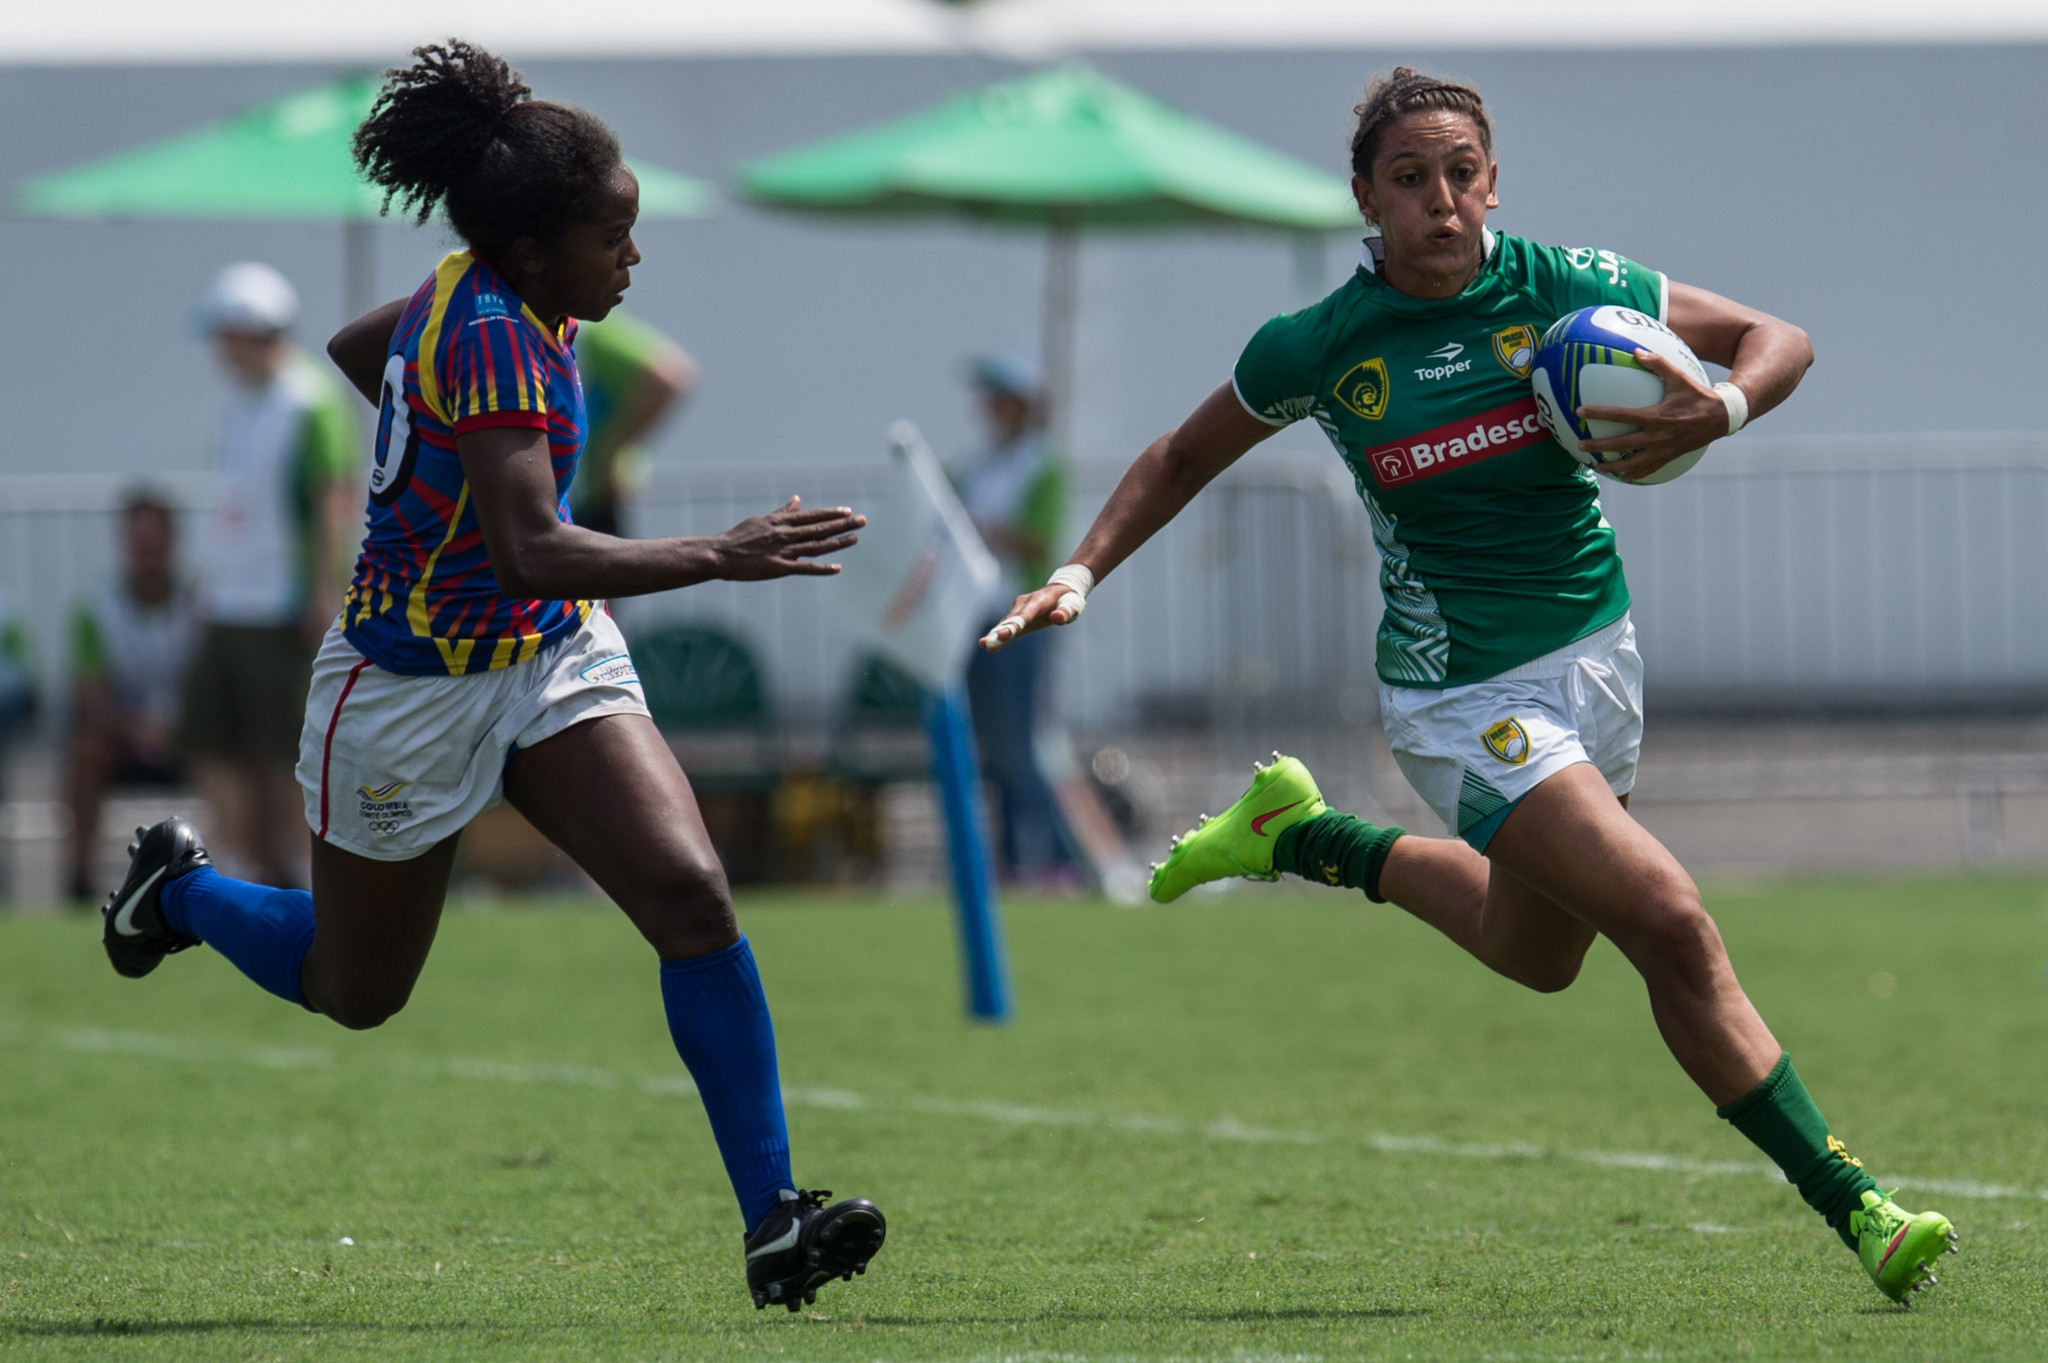 Brazil finished ninth in their home 2016 Games at rugby sevens' debut tournament ©Getty Images